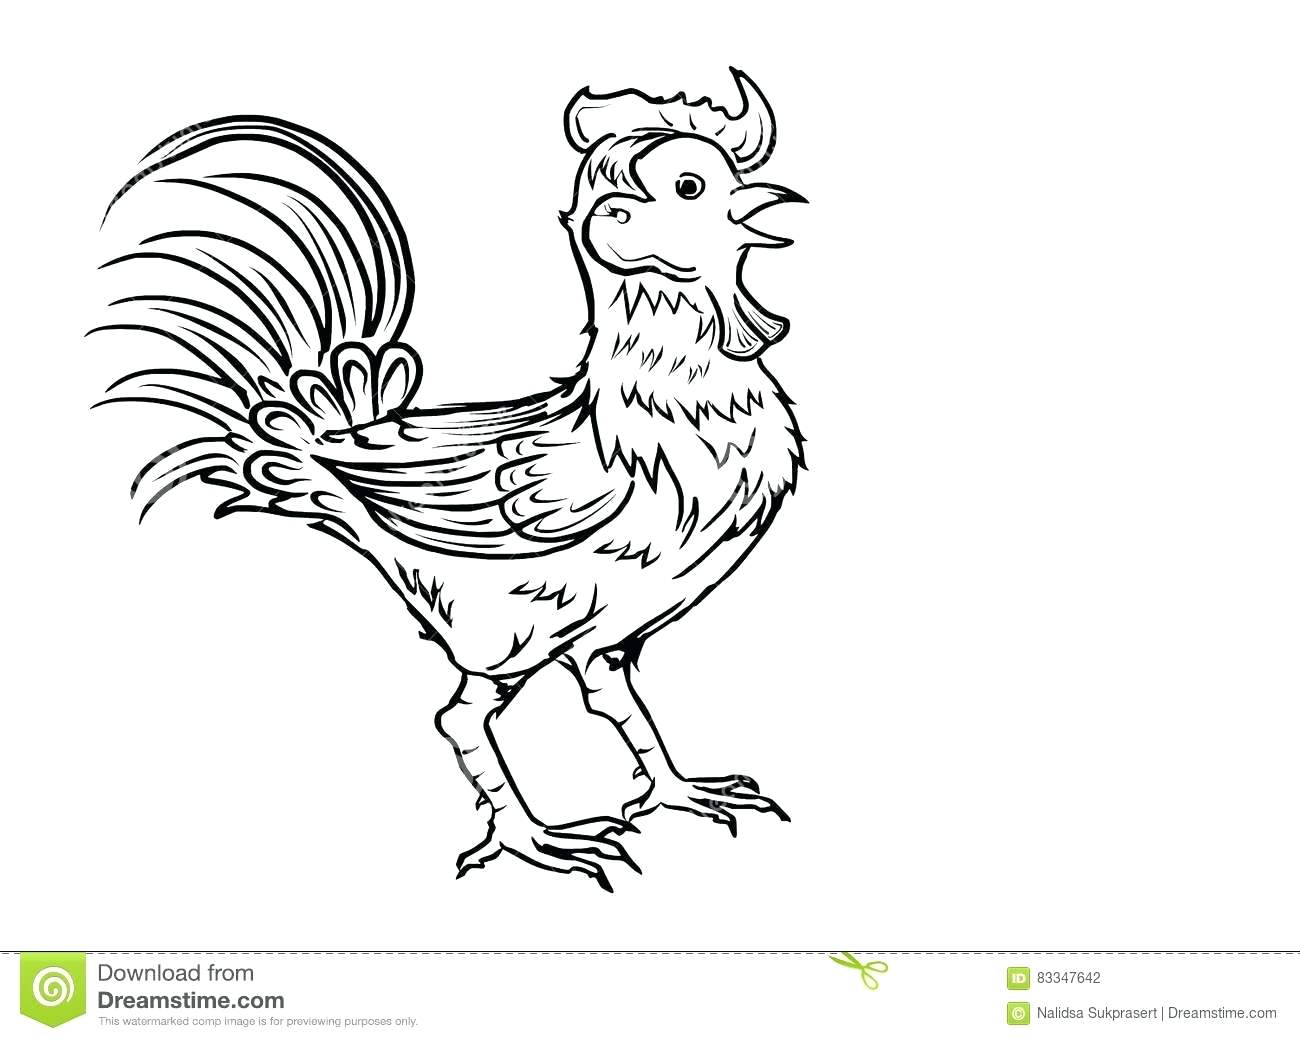 1300x1041 Coloring Pages Excellent Bird Outline Drawing. Kiwi Bird Outline